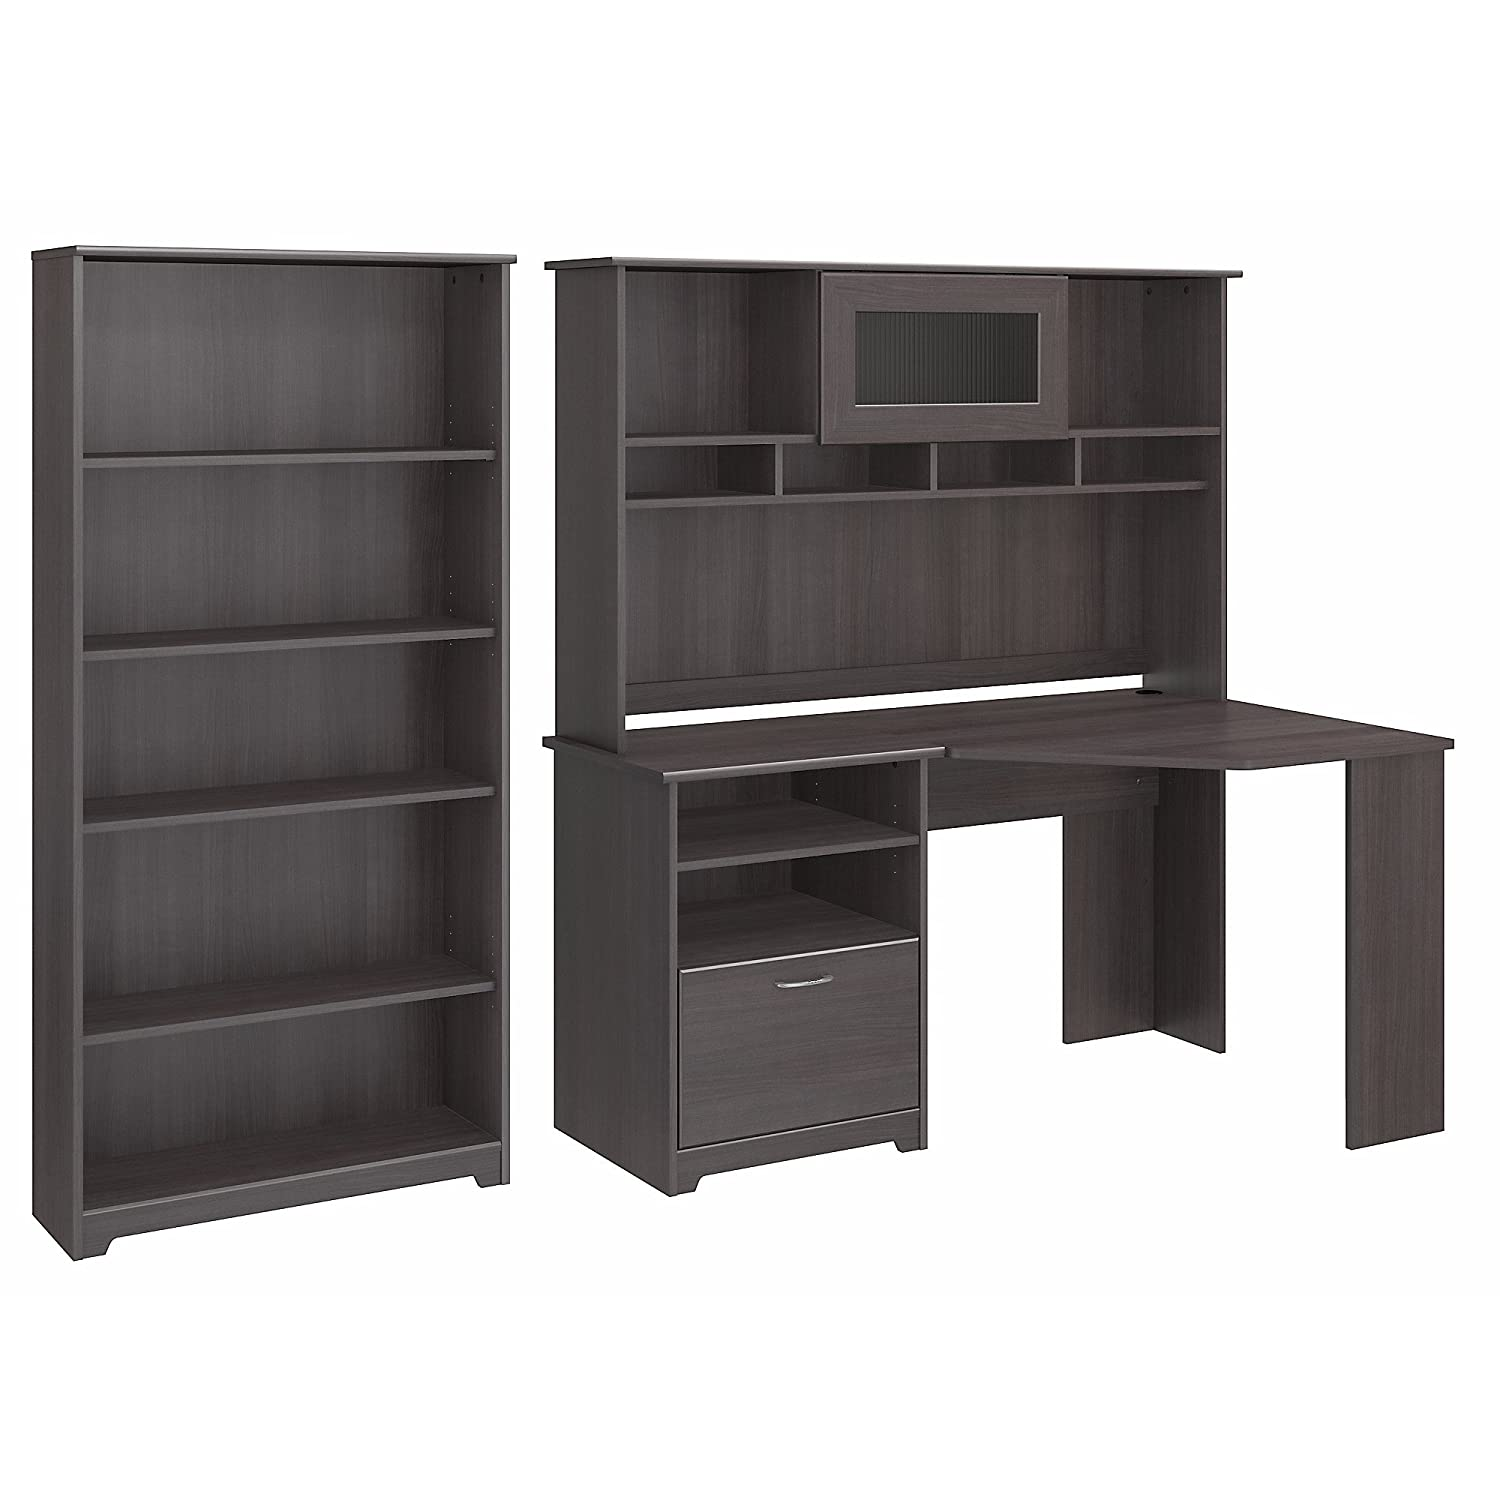 bookshelf madison mad bookcase lapeer item products b lang inch bookcases number hutch furniture